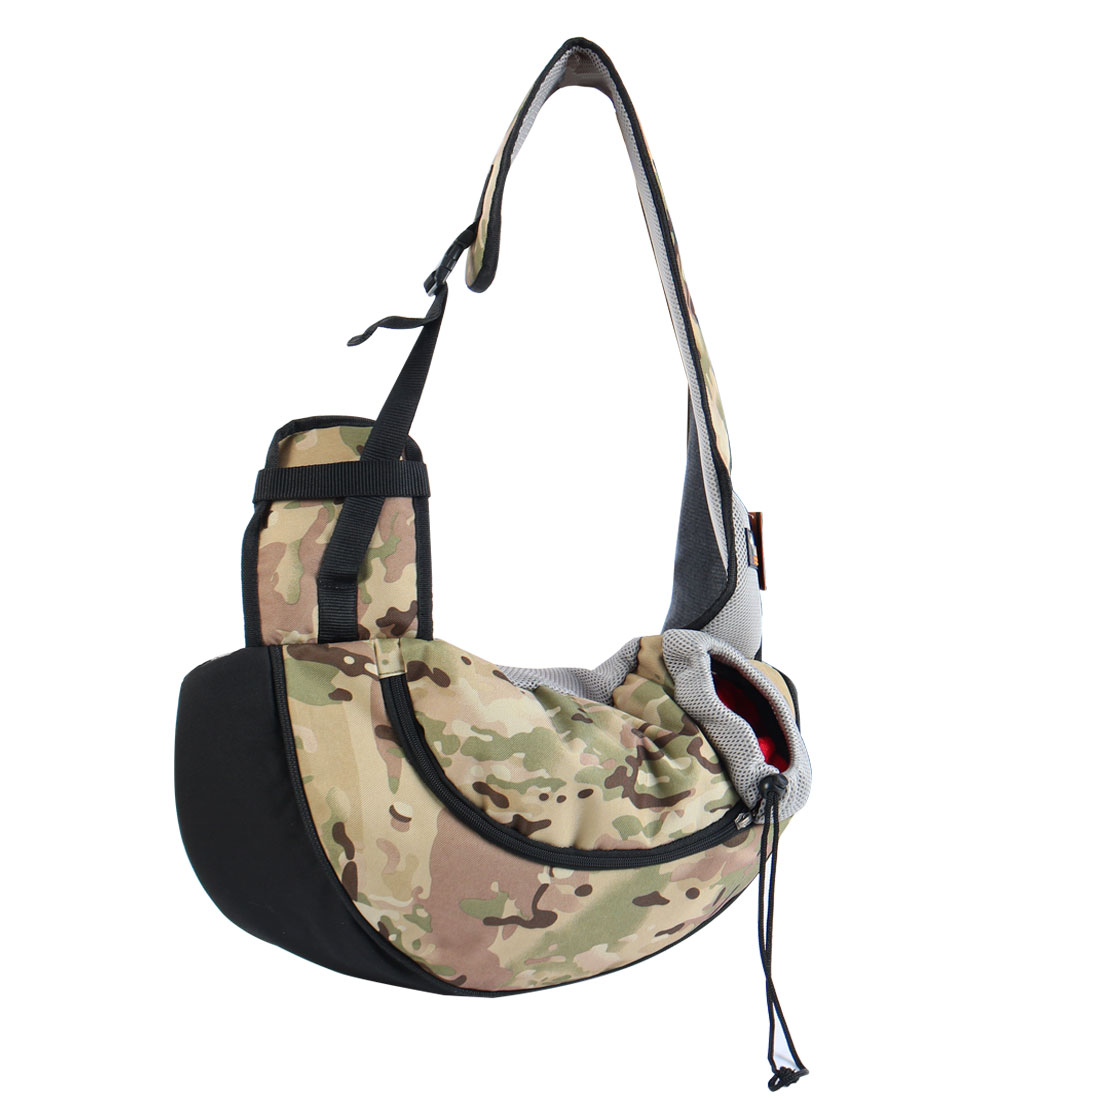 Onding Authorized Pet Dog Carrier Single Shoulder Backpack Army Green Camo - image 8 of 8